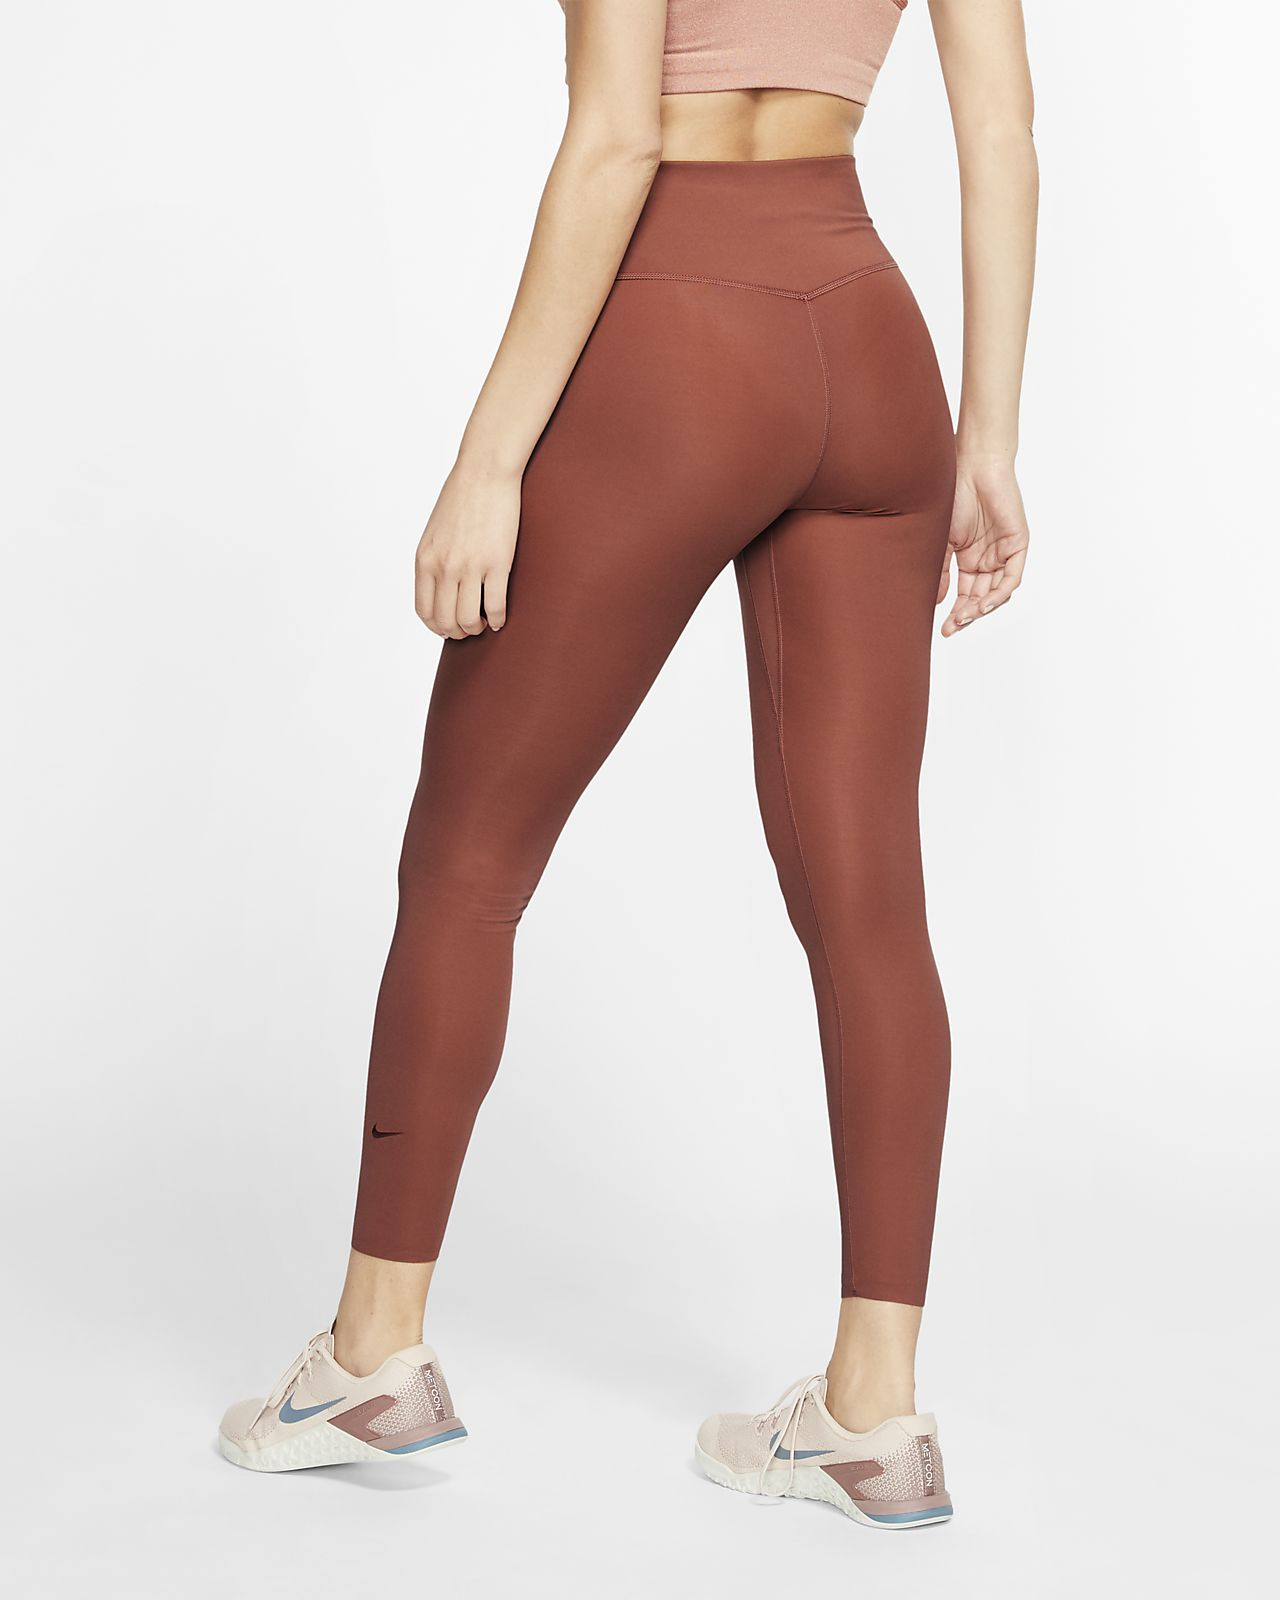 Nike One Luxe Women S 7 8 Tights